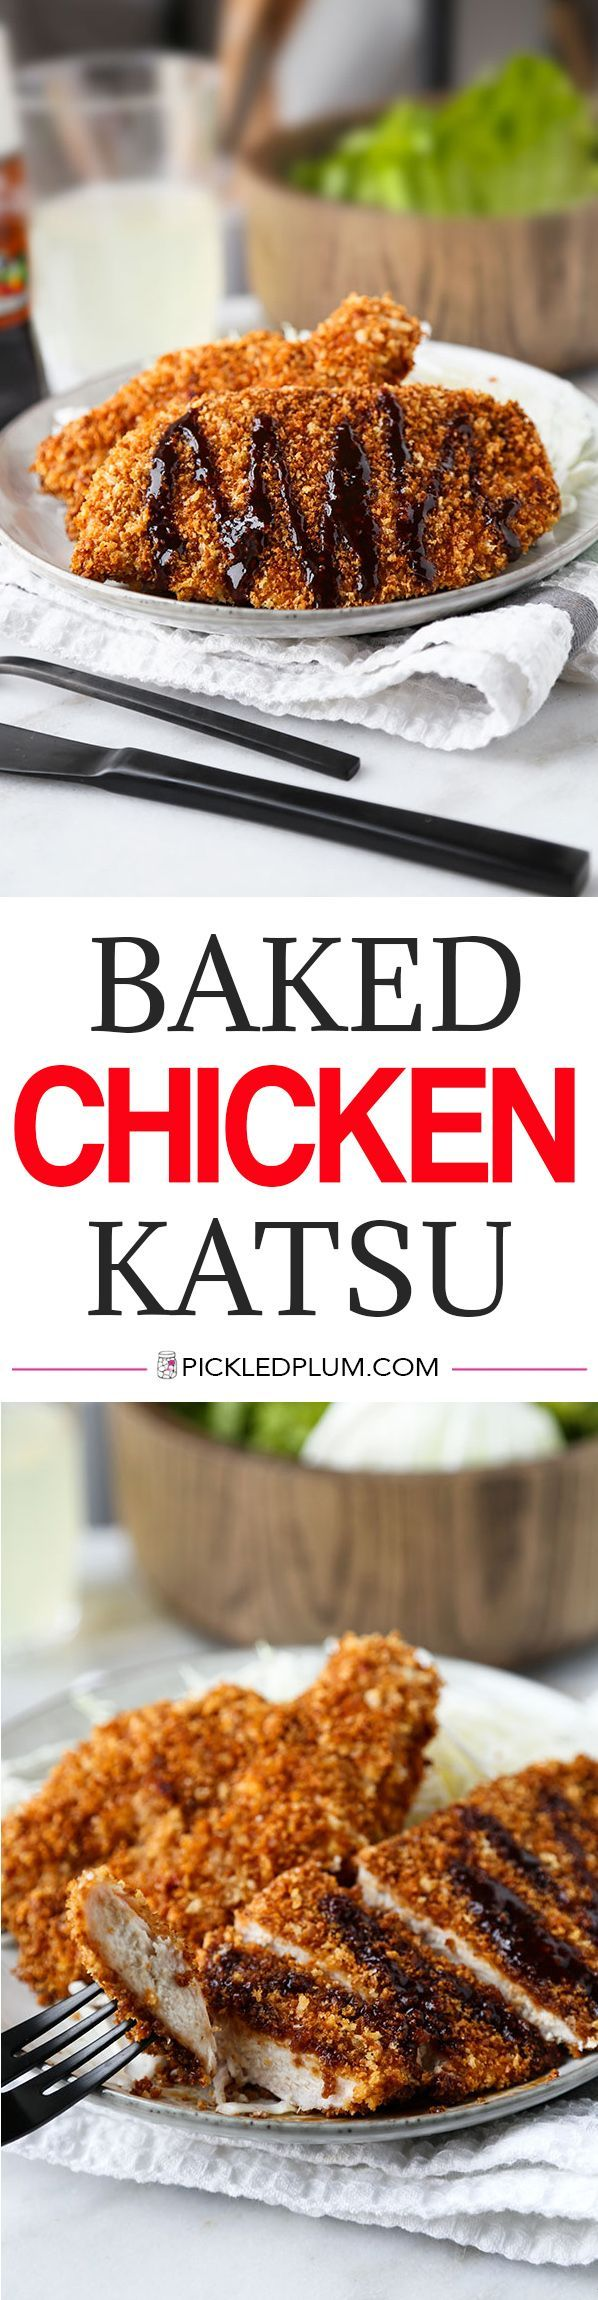 Baked Chicken Katsu - Not only is this baked chicken katsu recipe just as crispy as the deep fried version, it stays crispy even longer! Recipe, chicken, dinner, healthy, bake | pickledplum.com